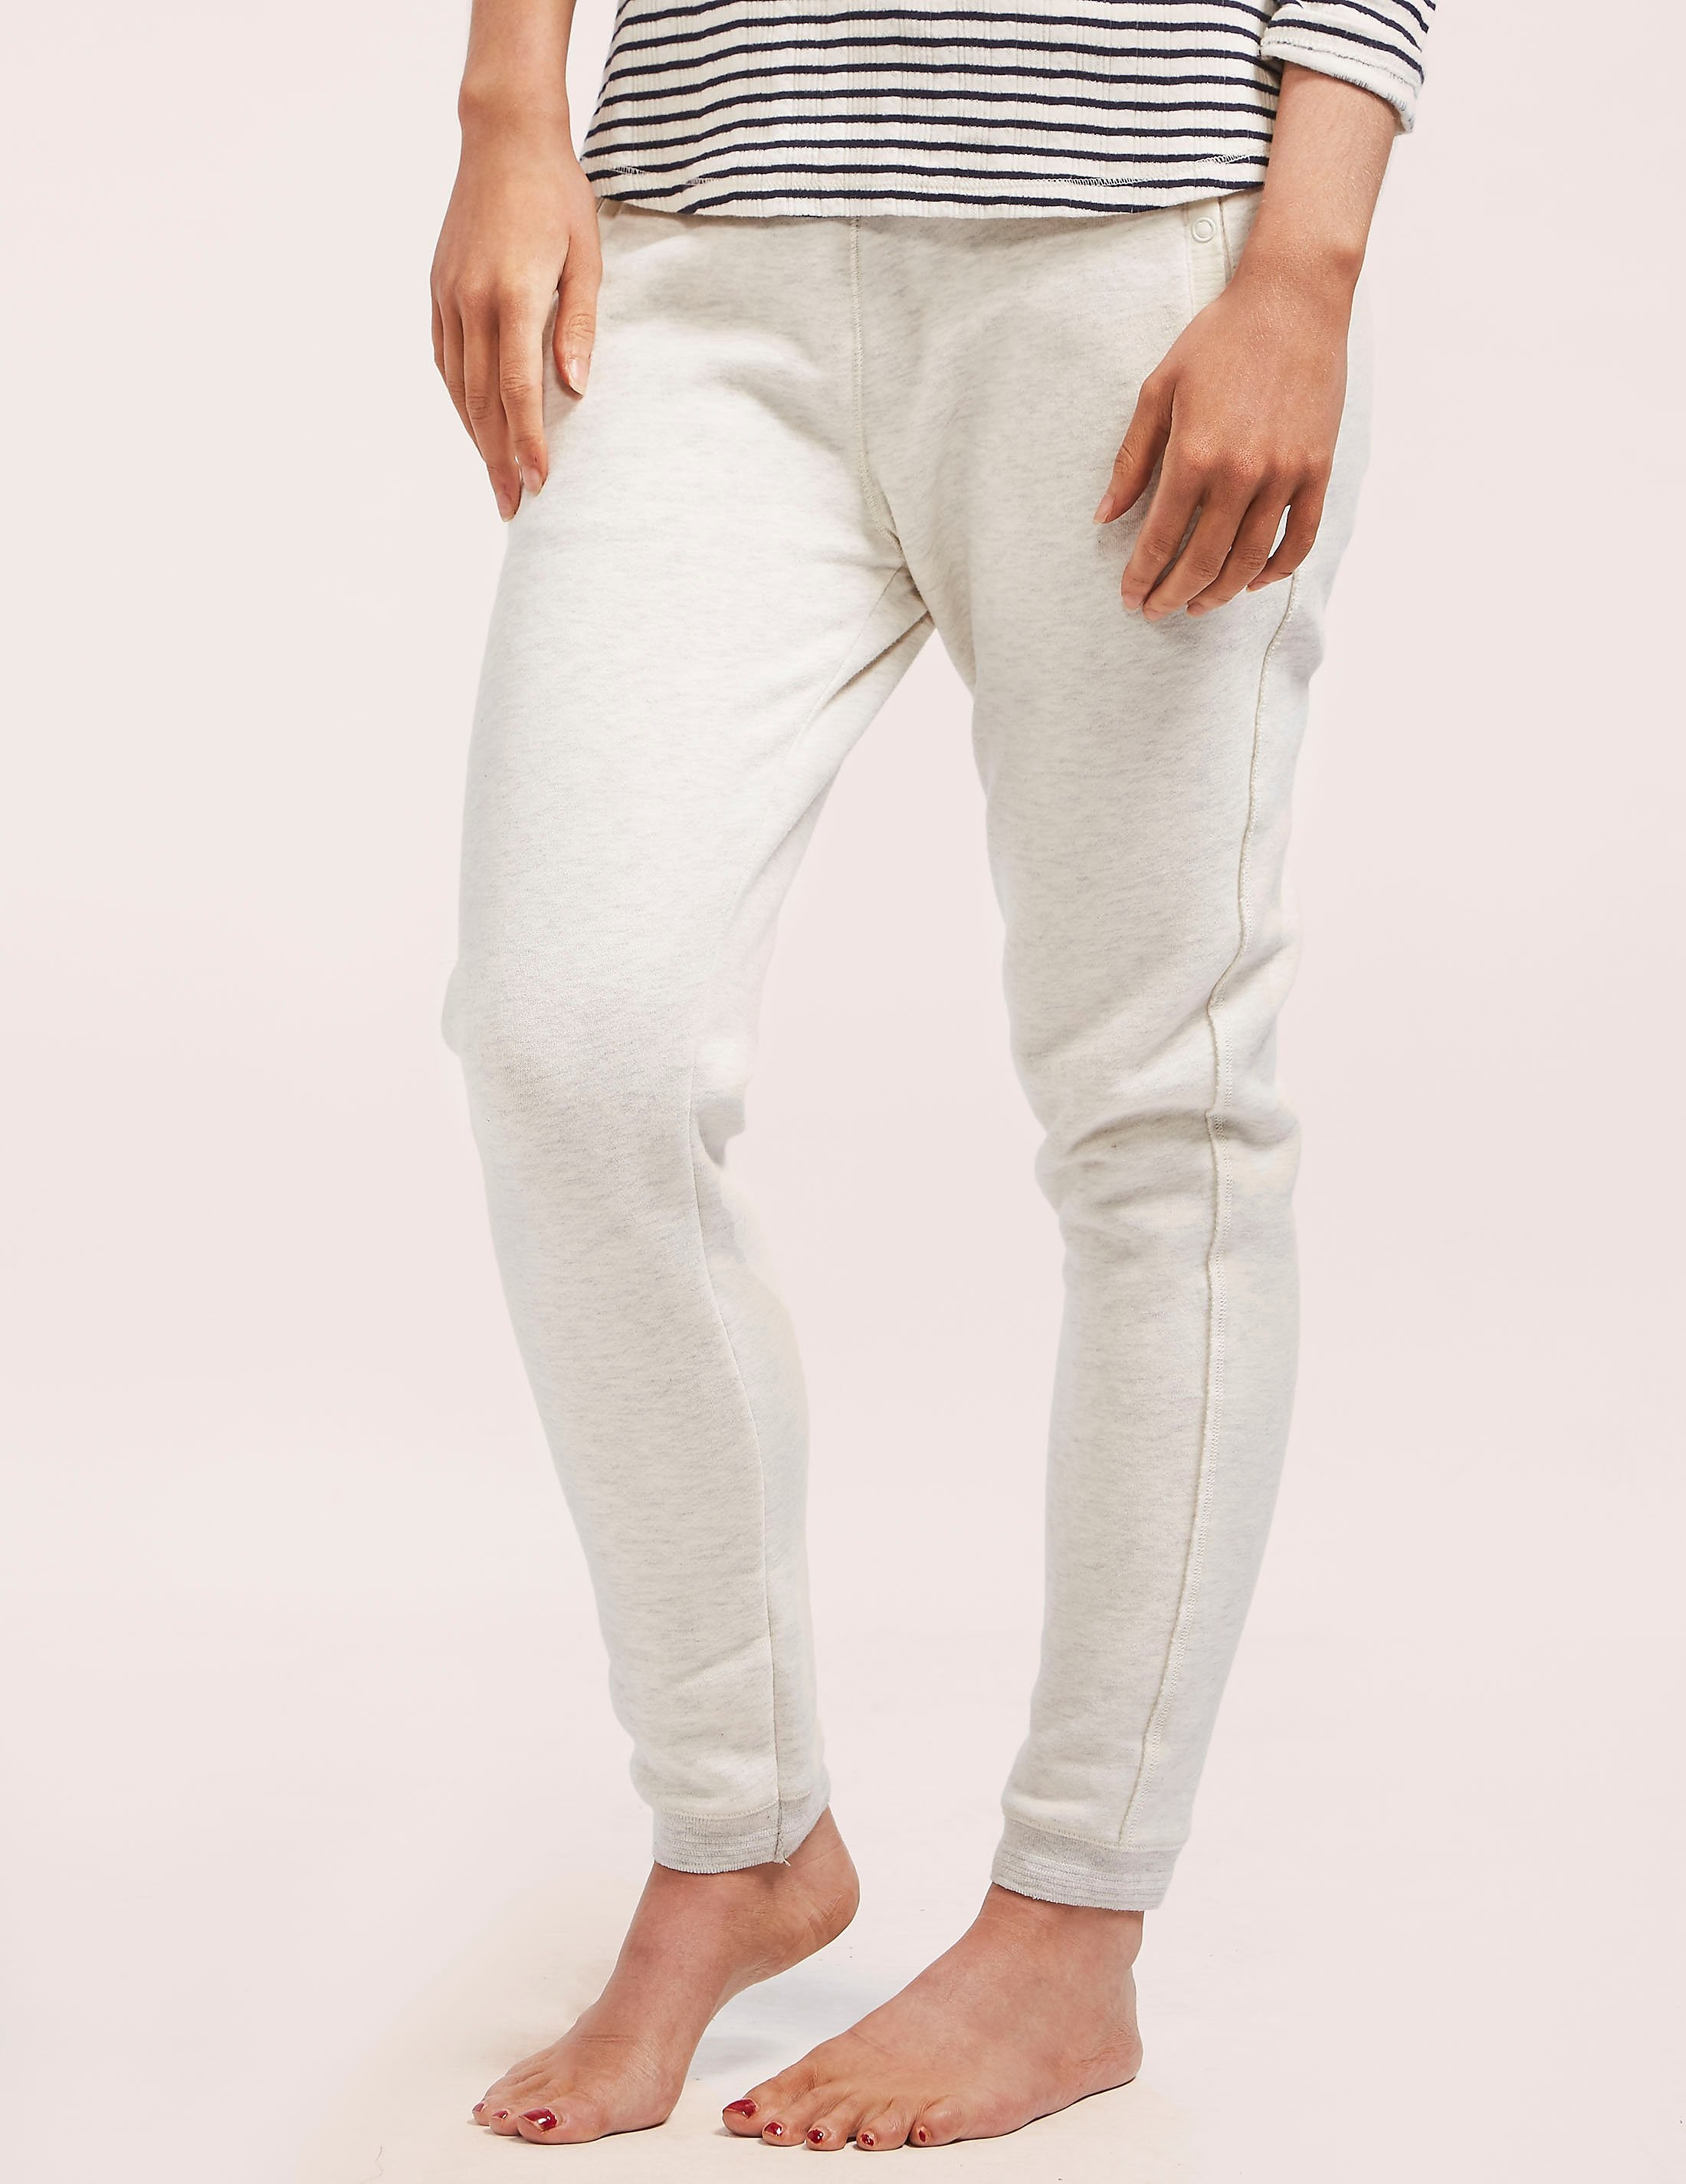 Maison Scotch Home Alone Joggers